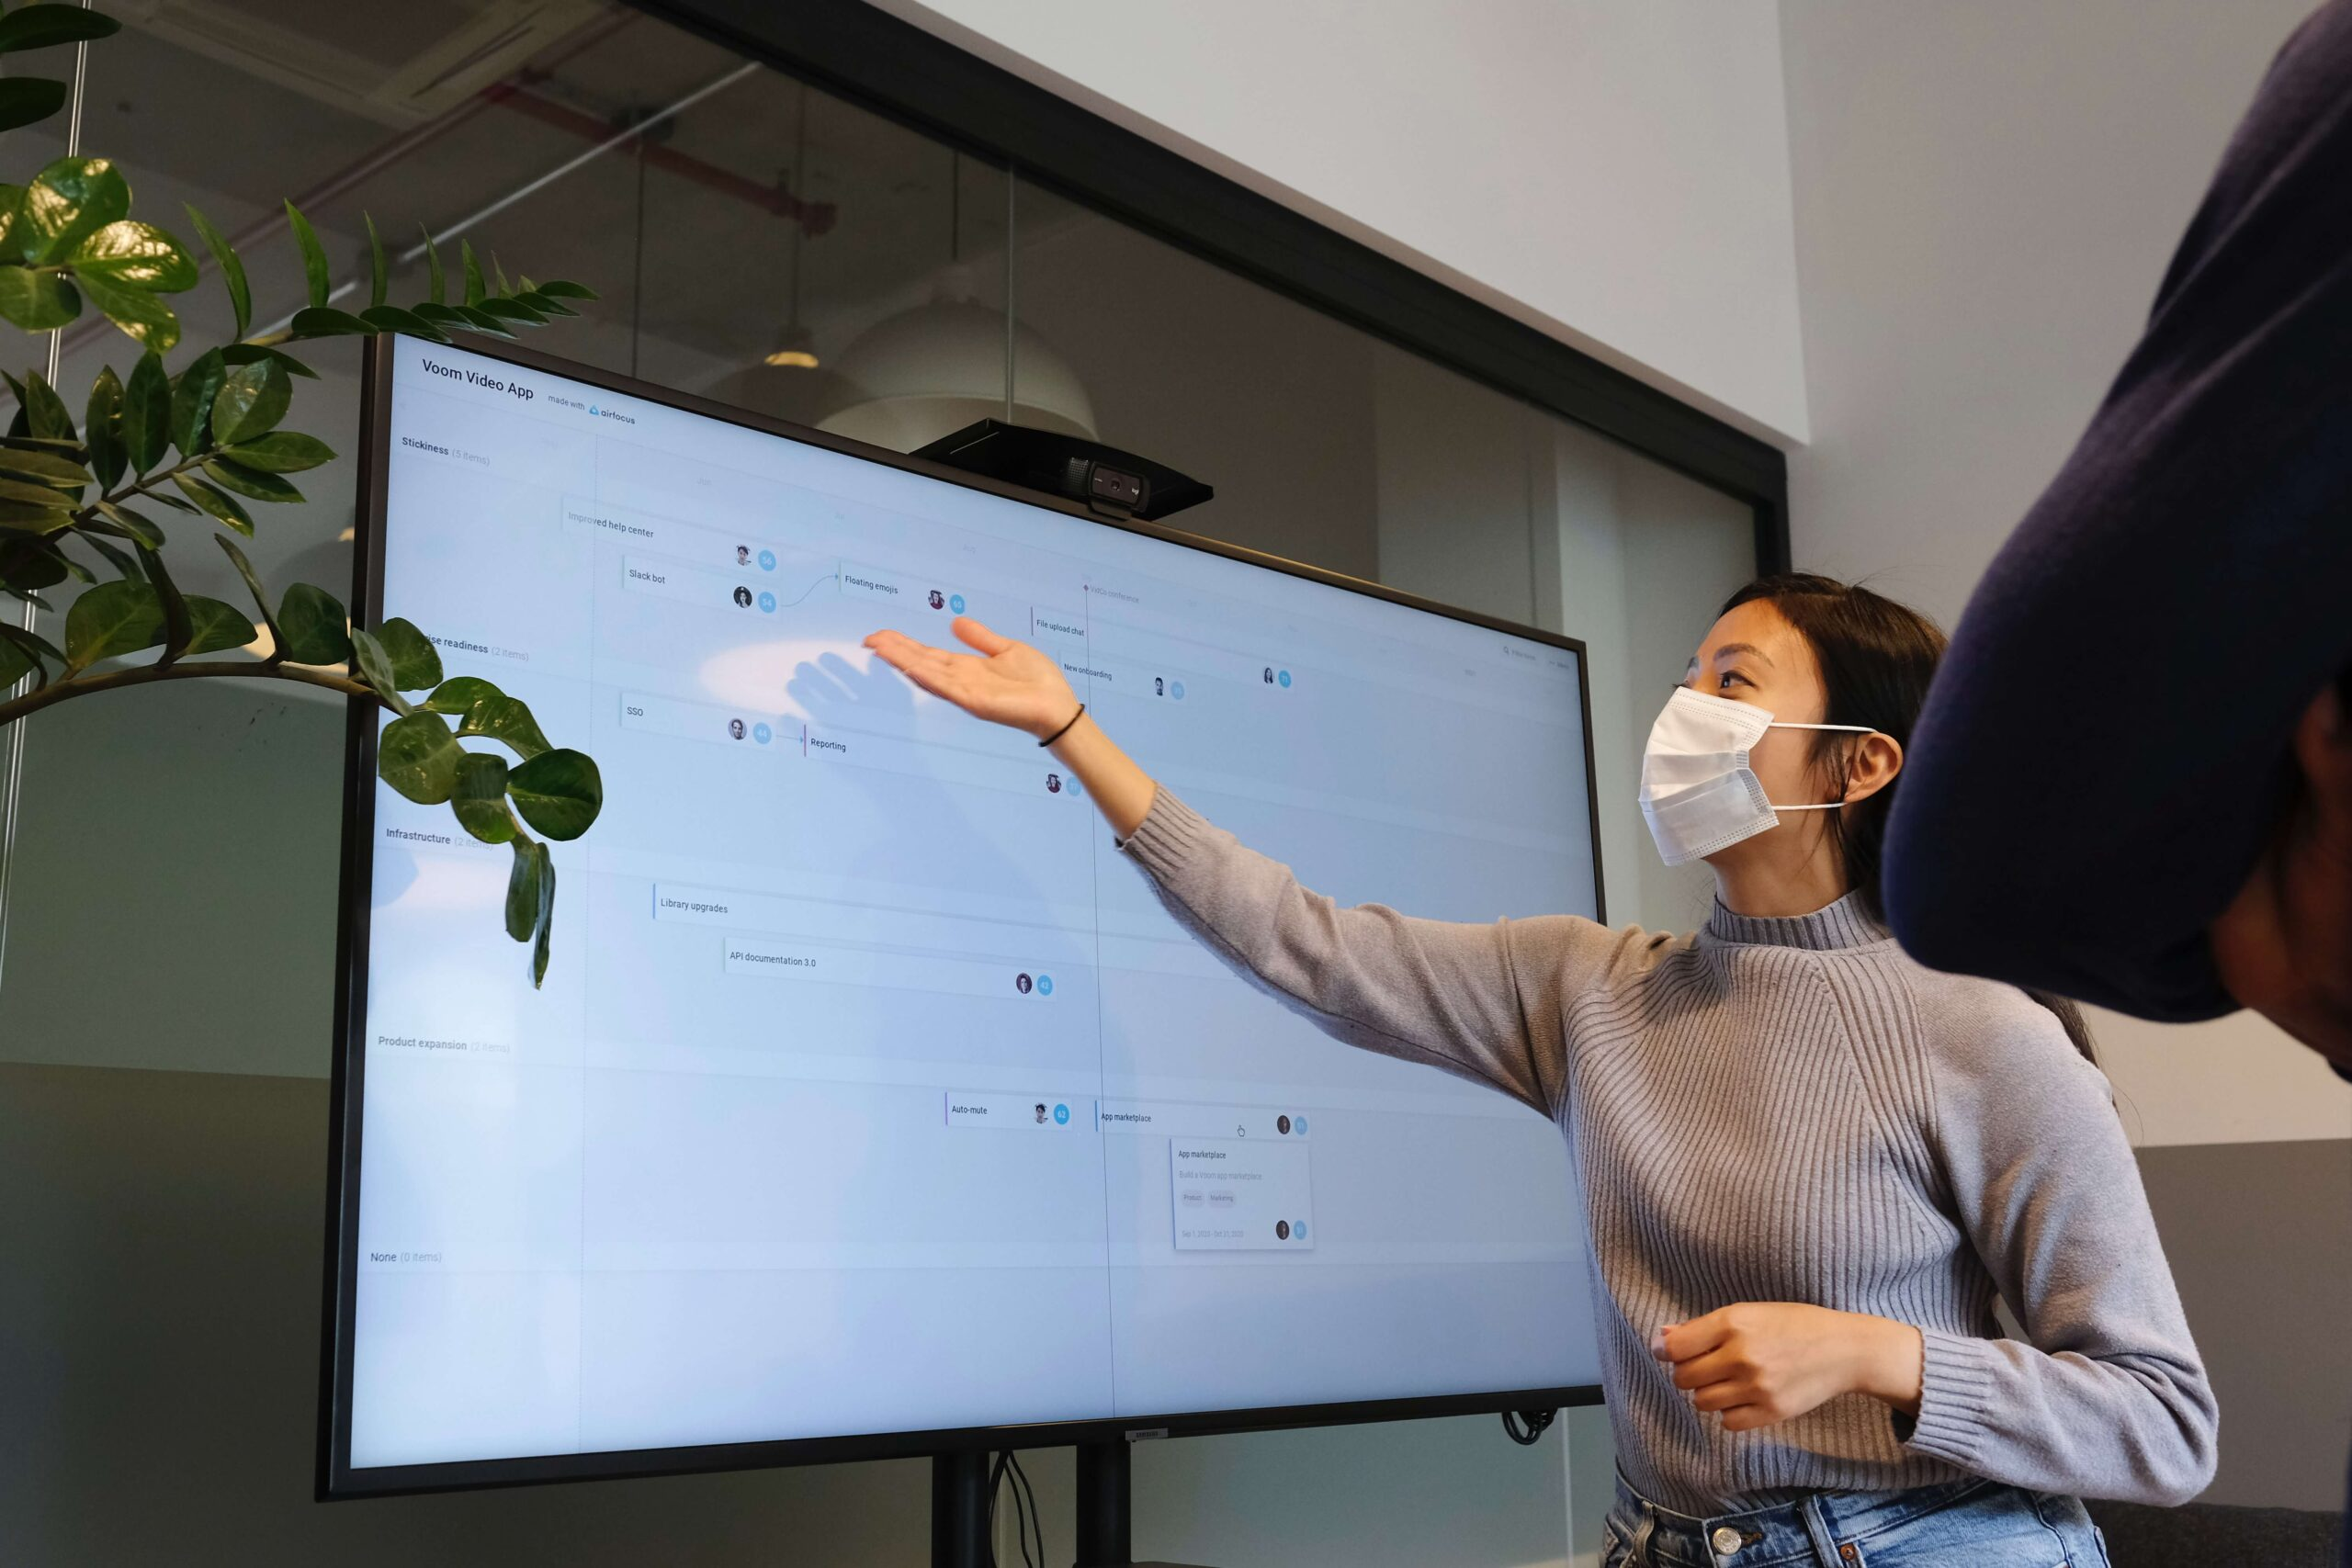 woman wearing a mask giving a presentation in a conference room using a digital display